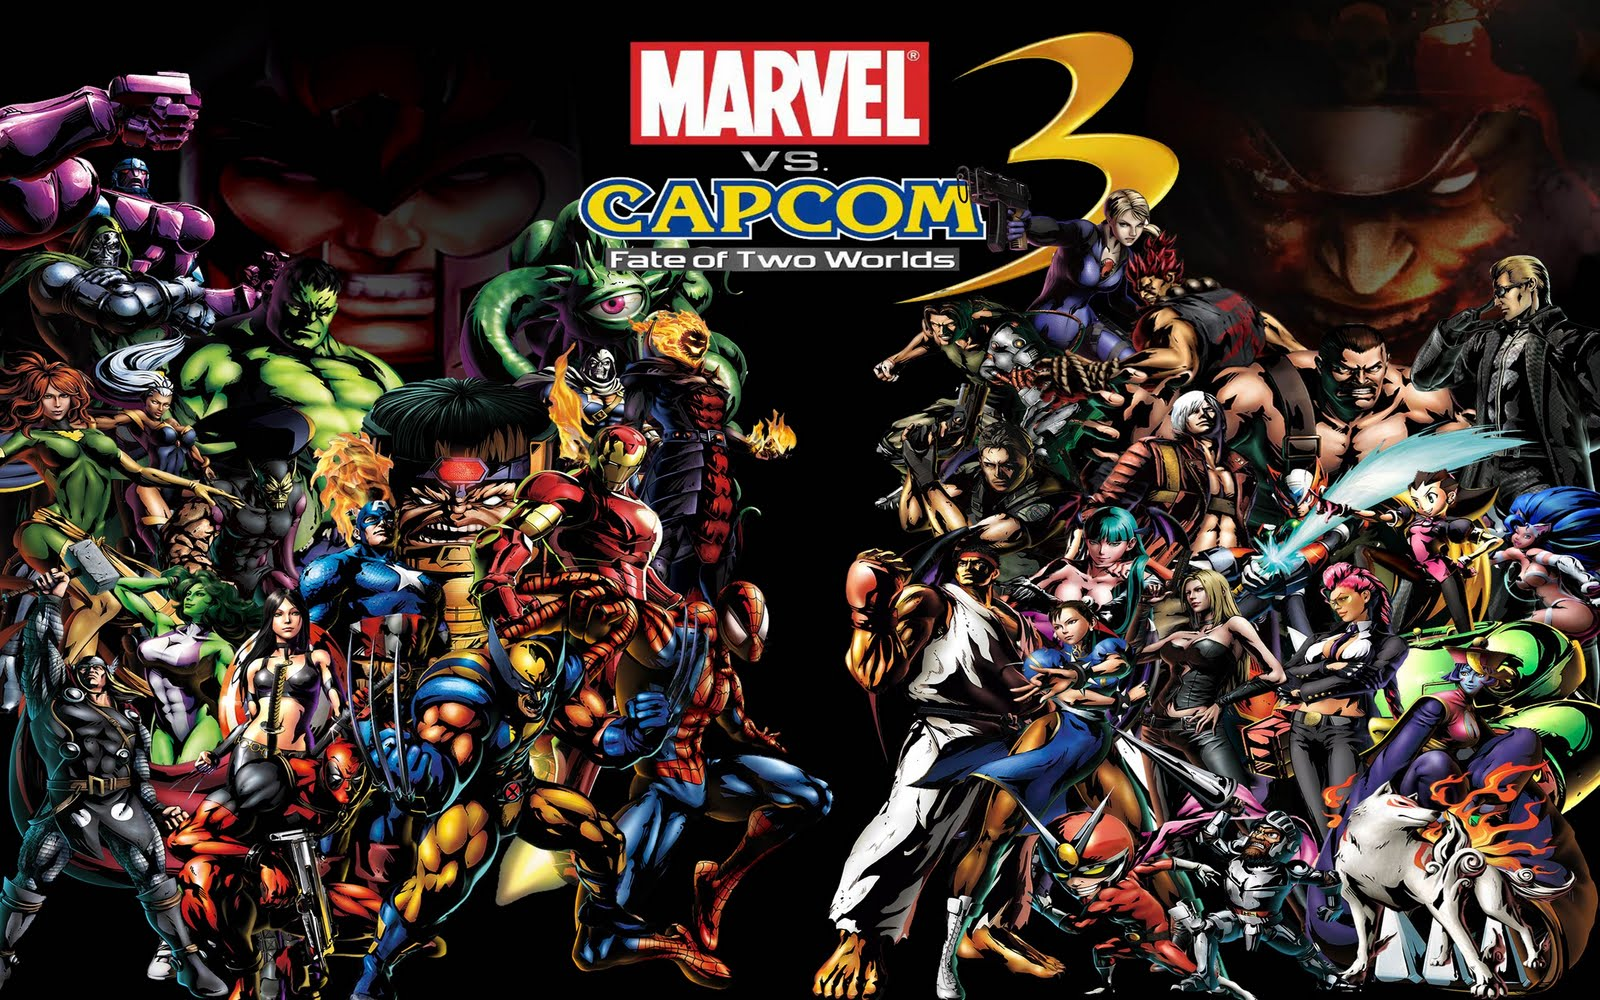 http://2.bp.blogspot.com/-w3RGGNB_57E/Taj_D2fwzFI/AAAAAAAAAEM/CxVqXpwlw5A/s1600/Marvel-VS-Capcom-3-Fate-Of-Two-Worlds-Characters-Widescreen-Wallpaper.jpg